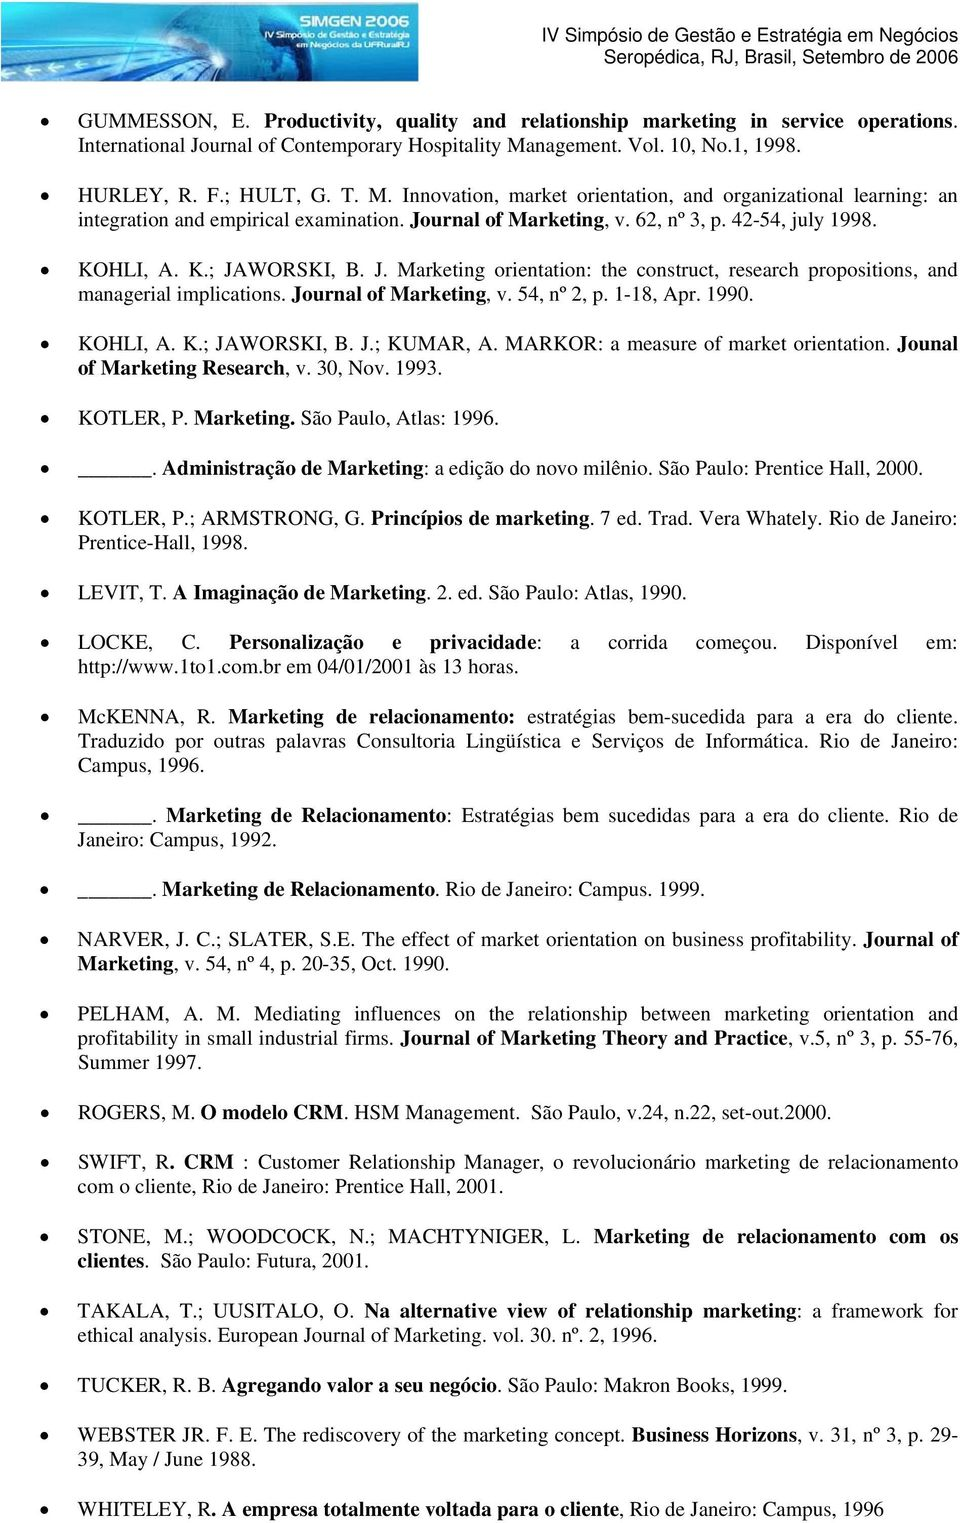 62, nº 3, p. 42-54, july 1998. KOHLI, A. K.; JAWORSKI, B. J. Marketing orientation: the construct, research propositions, and managerial implications. Journal of Marketing, v. 54, nº 2, p. 1-18, Apr.